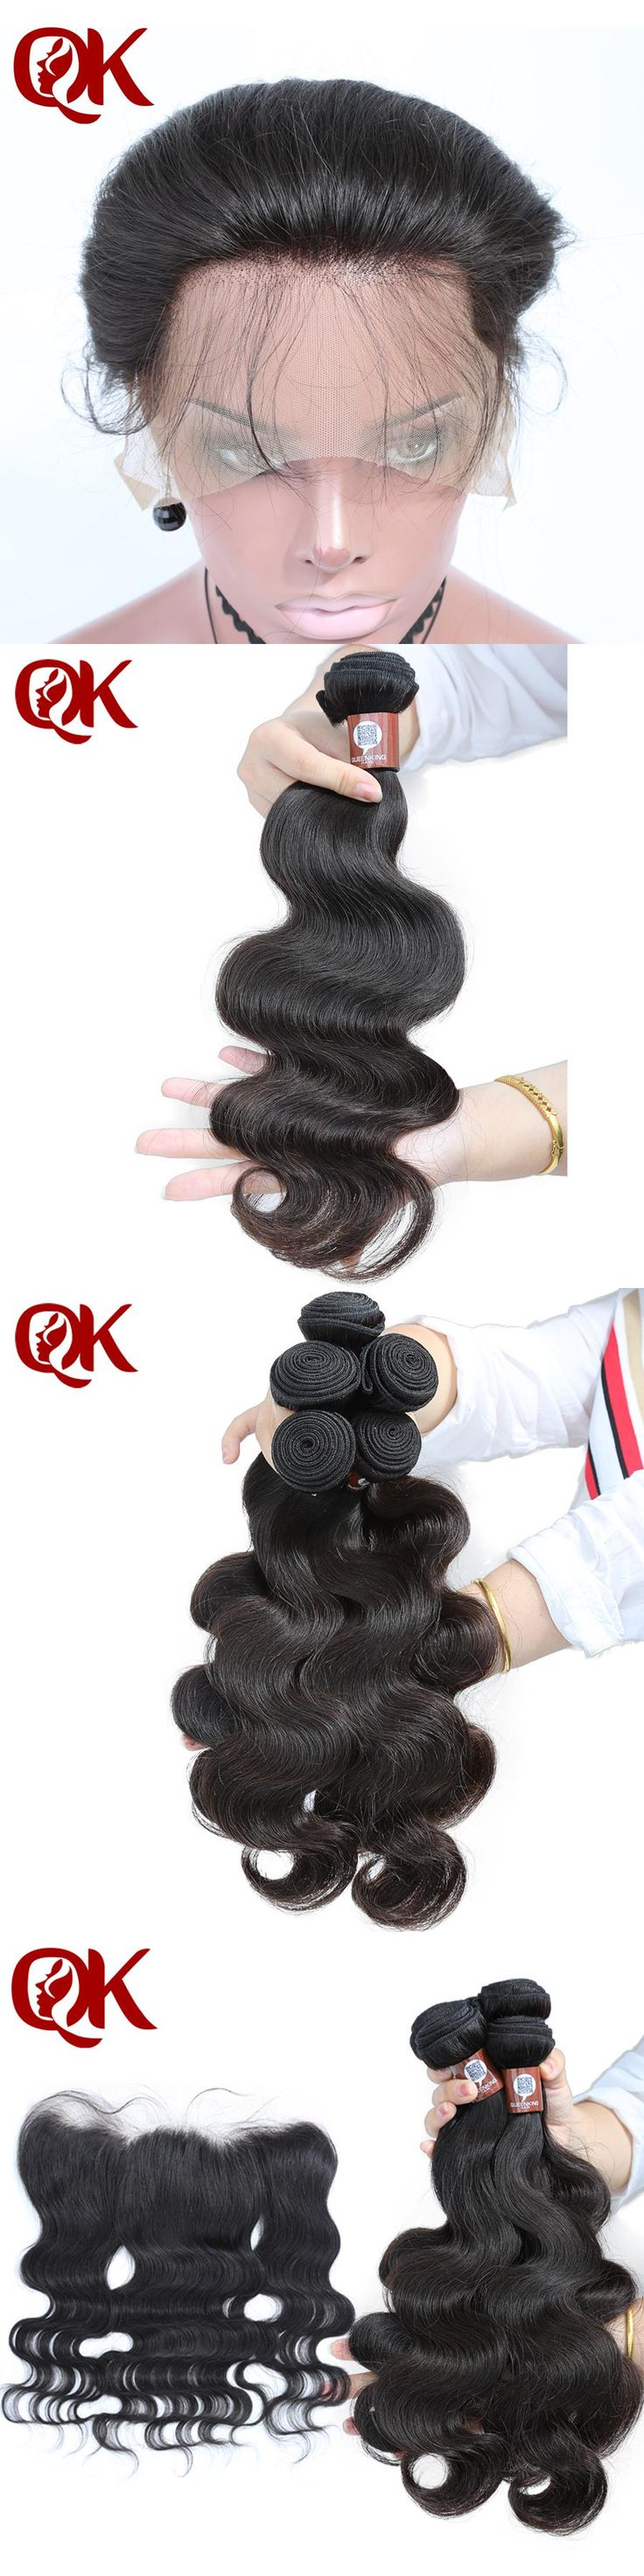 QueenKing Human Hair Bundles With Closure Brazilian Body Wave Hair Weaves 3 Bundles and Lace Frontal 13x4 Pre-Plucked Hair Line